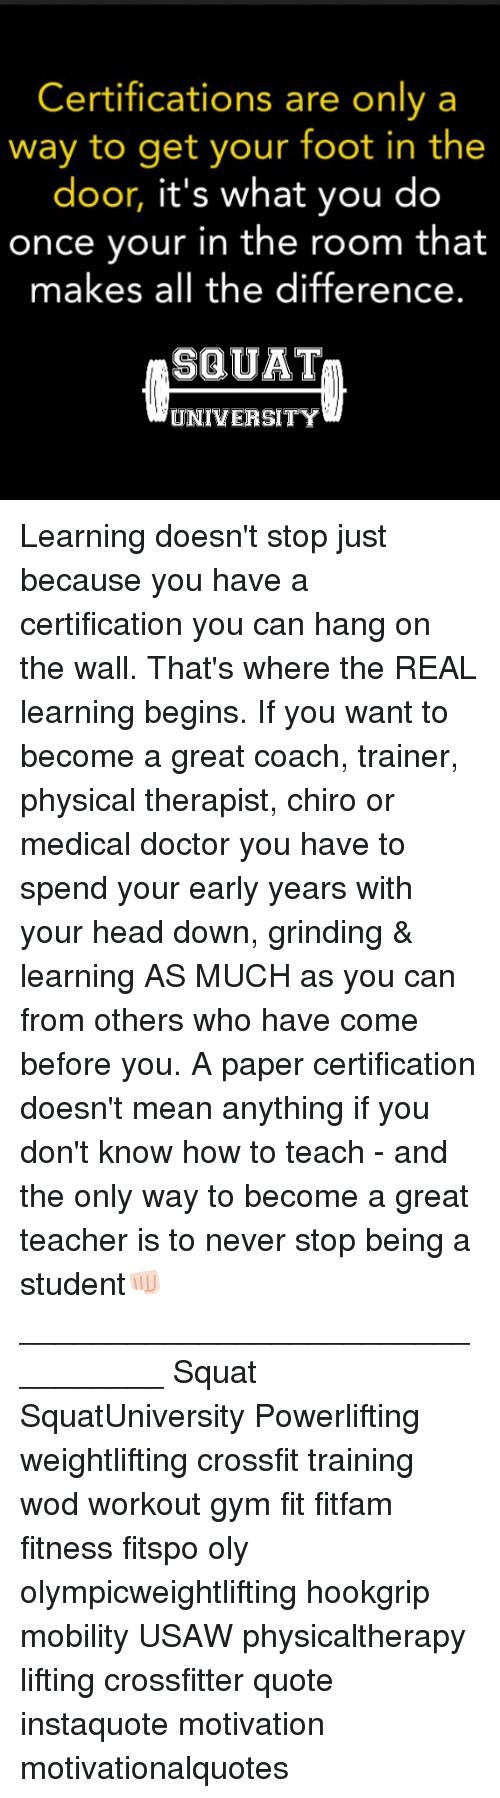 Doctor, Gym, and Head: Certifications are only a  way to get your foot in the  door, it's what you do  once vour in the room that  makes all the difference.  SQUAT  UNIVERSITY Learning doesn't stop just because you have a certification you can hang on the wall. That's where the REAL learning begins. If you want to become a great coach, trainer, physical therapist, chiro or medical doctor you have to spend your early years with your head down, grinding & learning AS MUCH as you can from others who have come before you. A paper certification doesn't mean anything if you don't know how to teach - and the only way to become a great teacher is to never stop being a student👊🏻 _________________________________ Squat SquatUniversity Powerlifting weightlifting crossfit training wod workout gym fit fitfam fitness fitspo oly olympicweightlifting hookgrip mobility USAW physicaltherapy lifting crossfitter quote instaquote motivation motivationalquotes